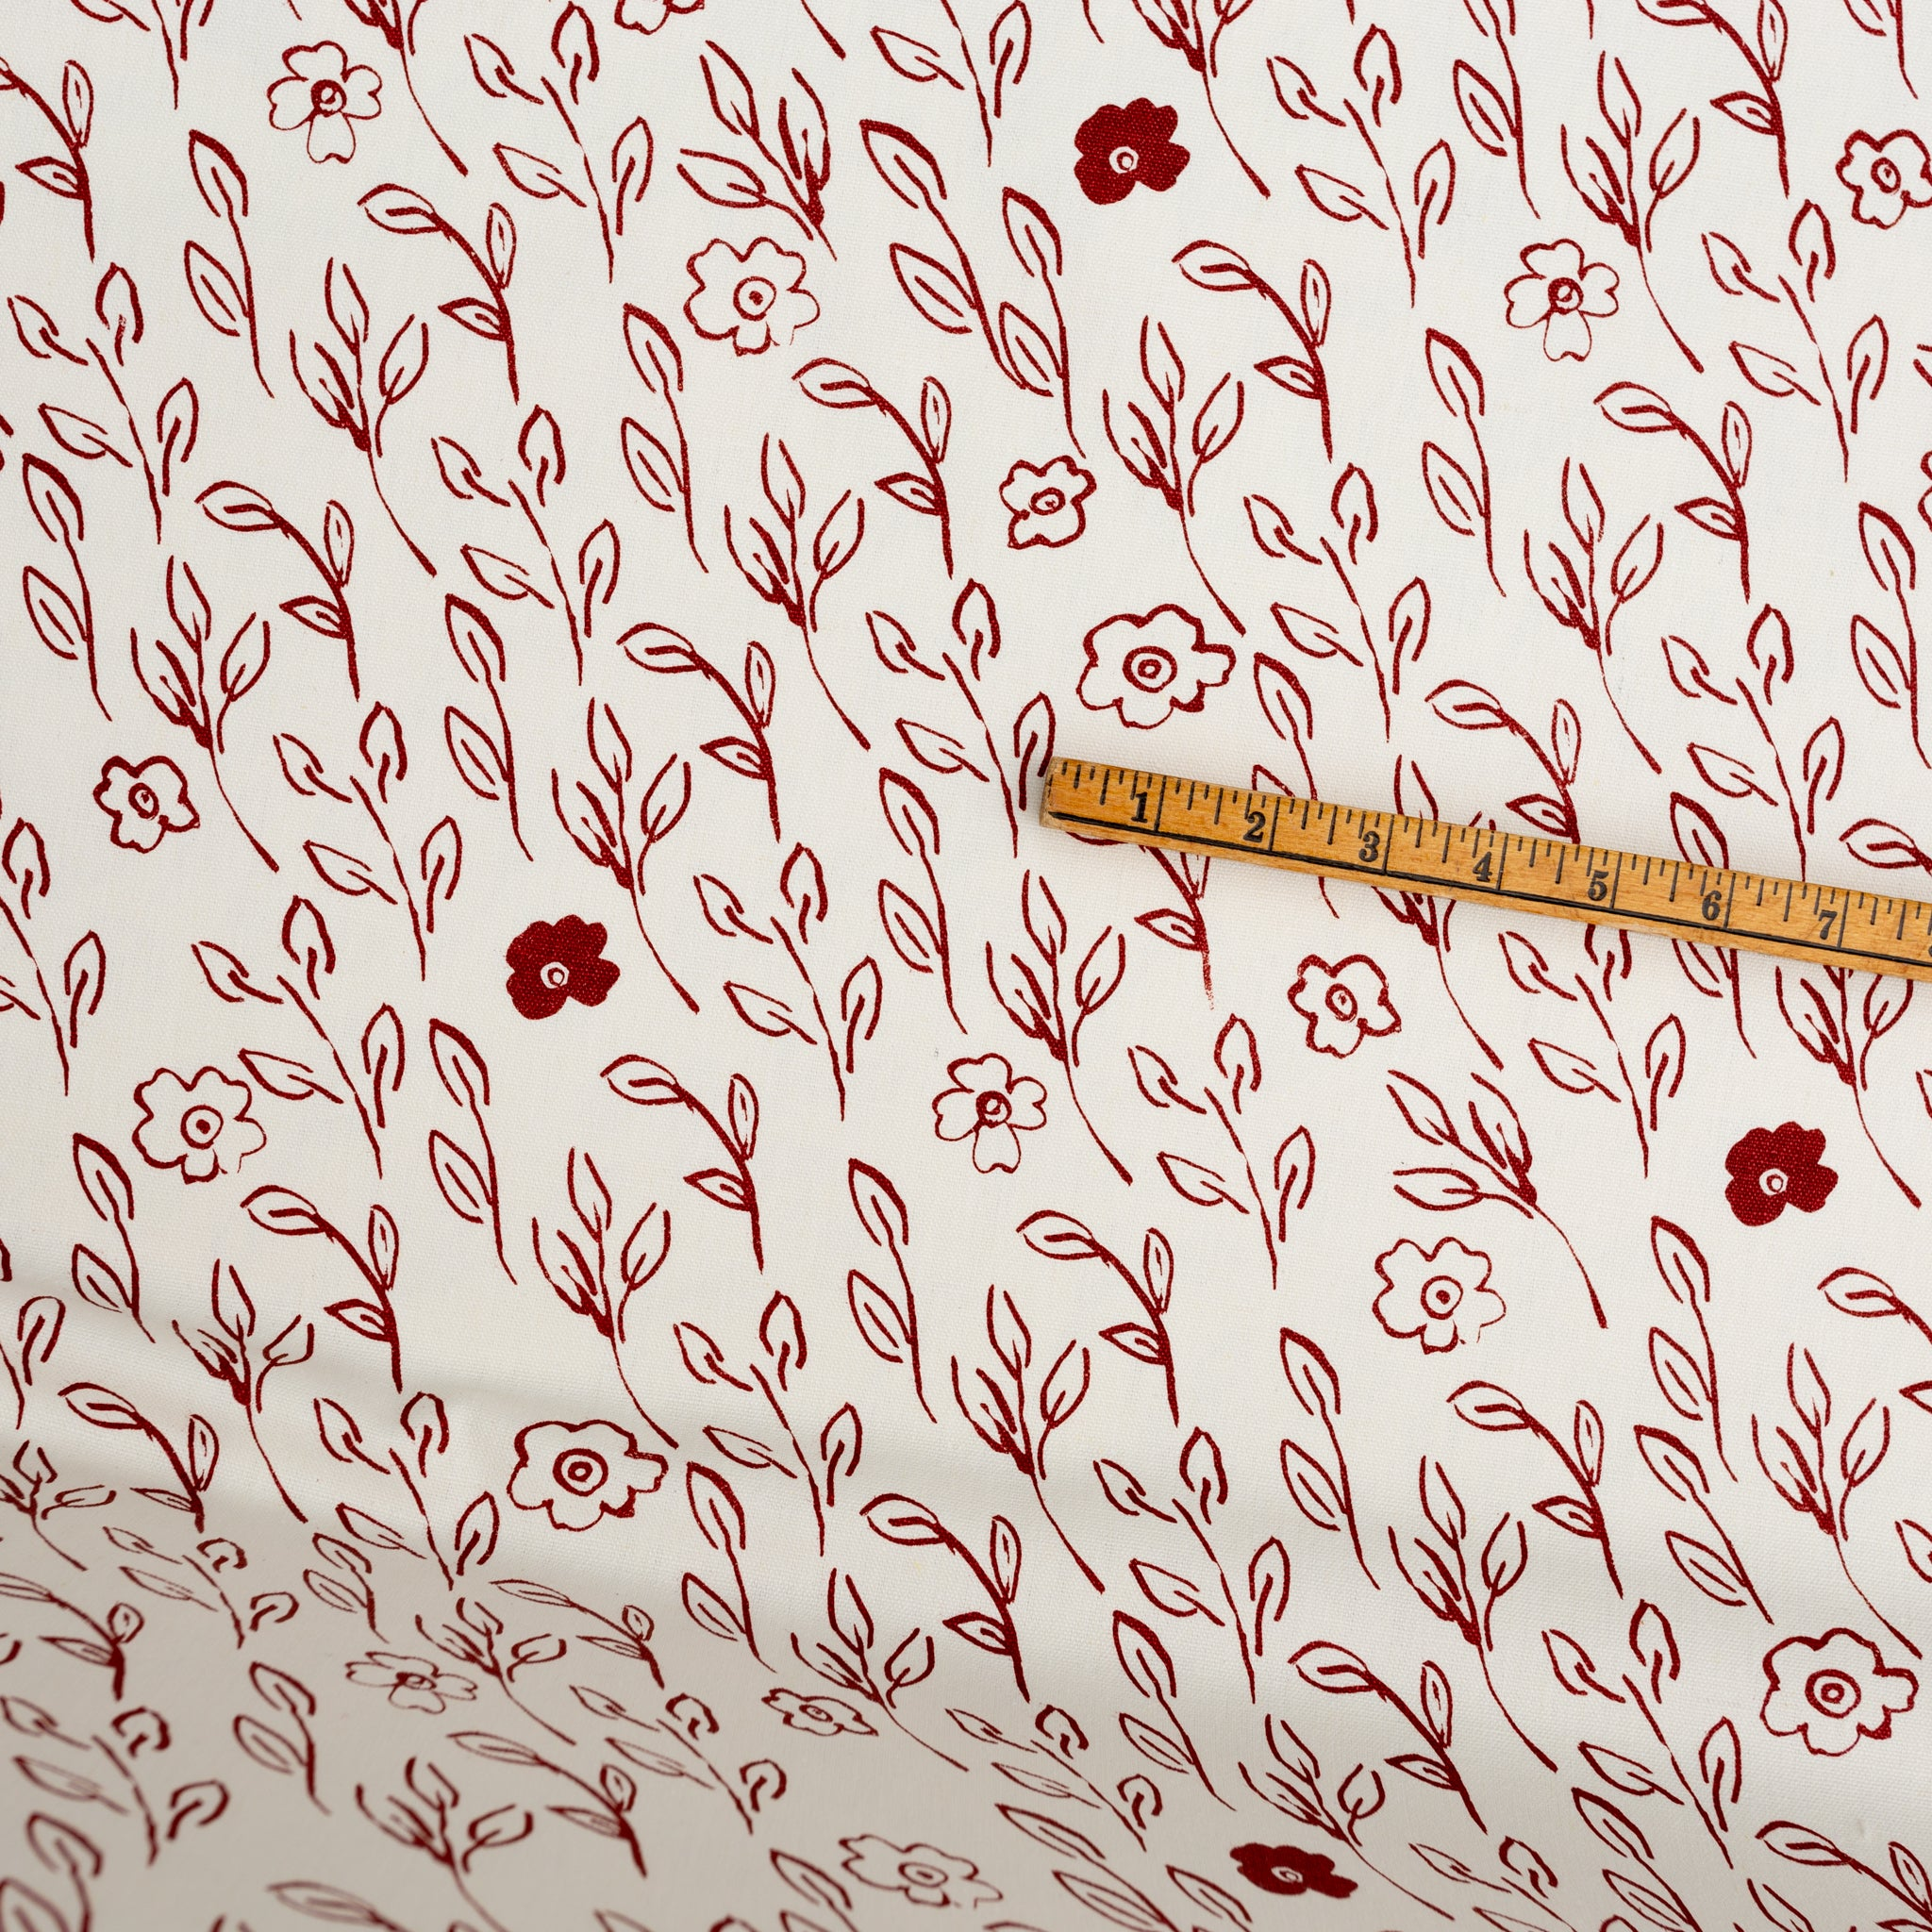 Screenprinted fabric yardage of Briar printed in Brick with yardstick